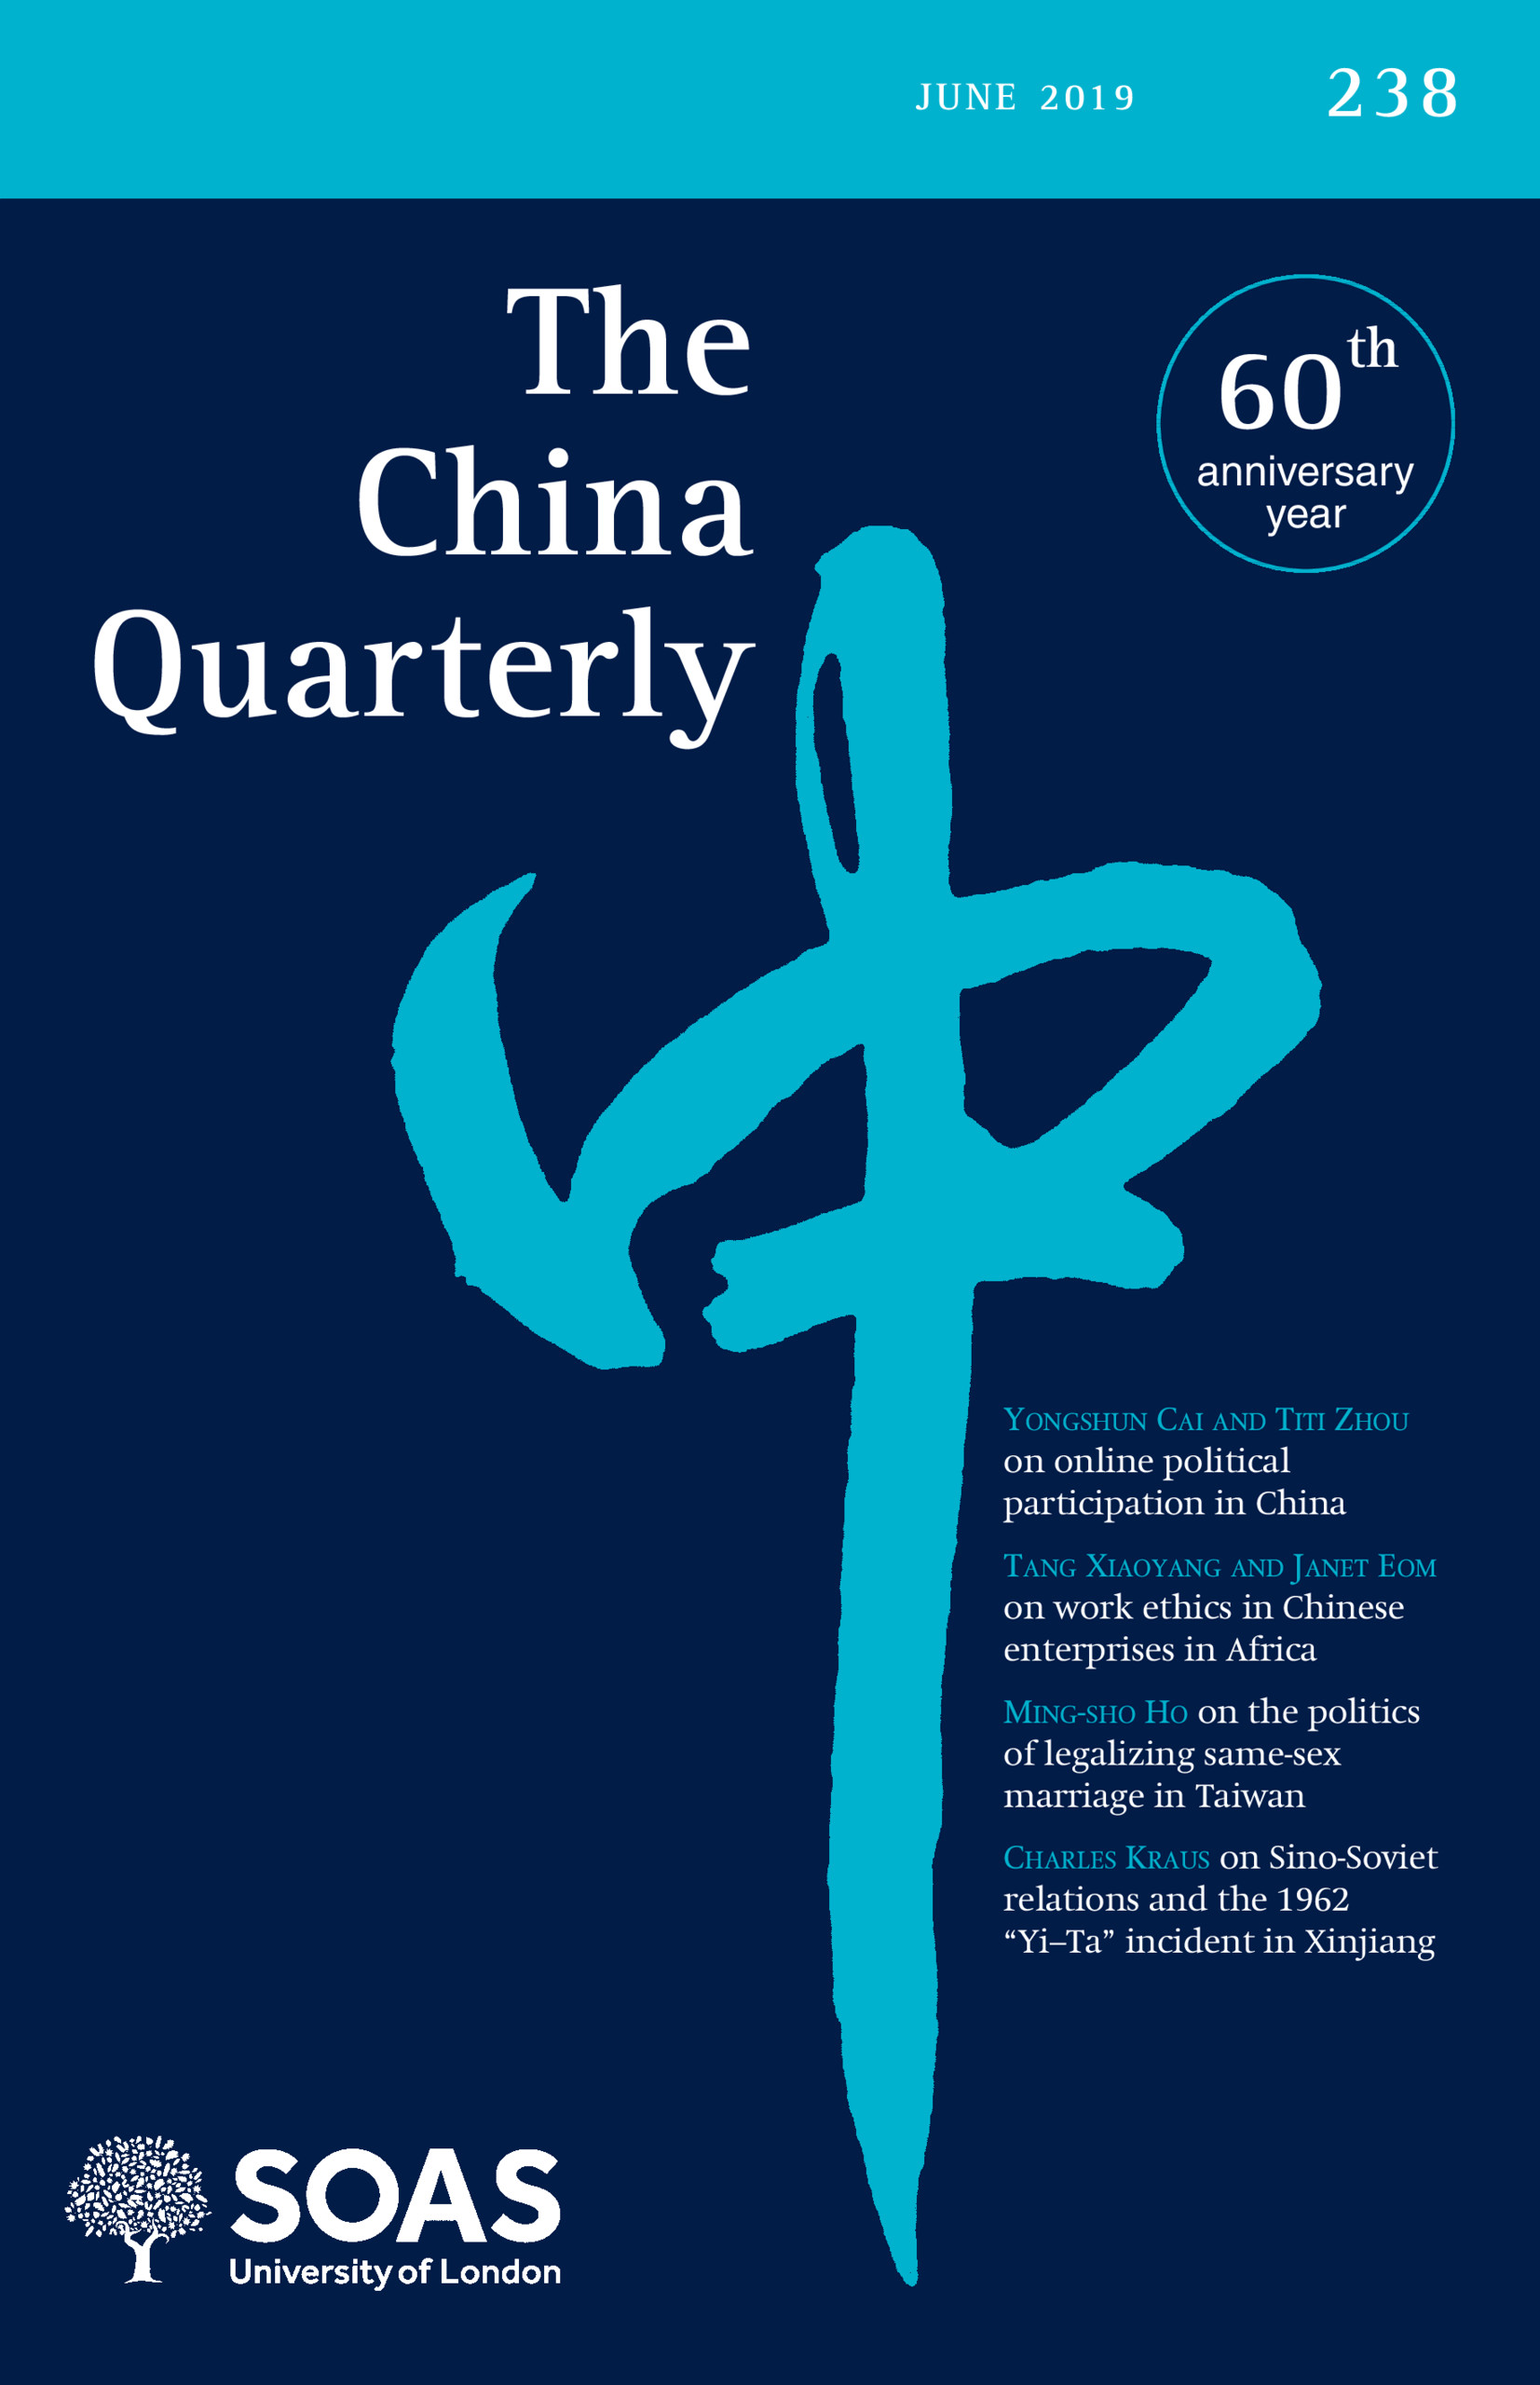 Journal Cover - Title in white lettering above a large, light blue Chinese character against a dark blue background.